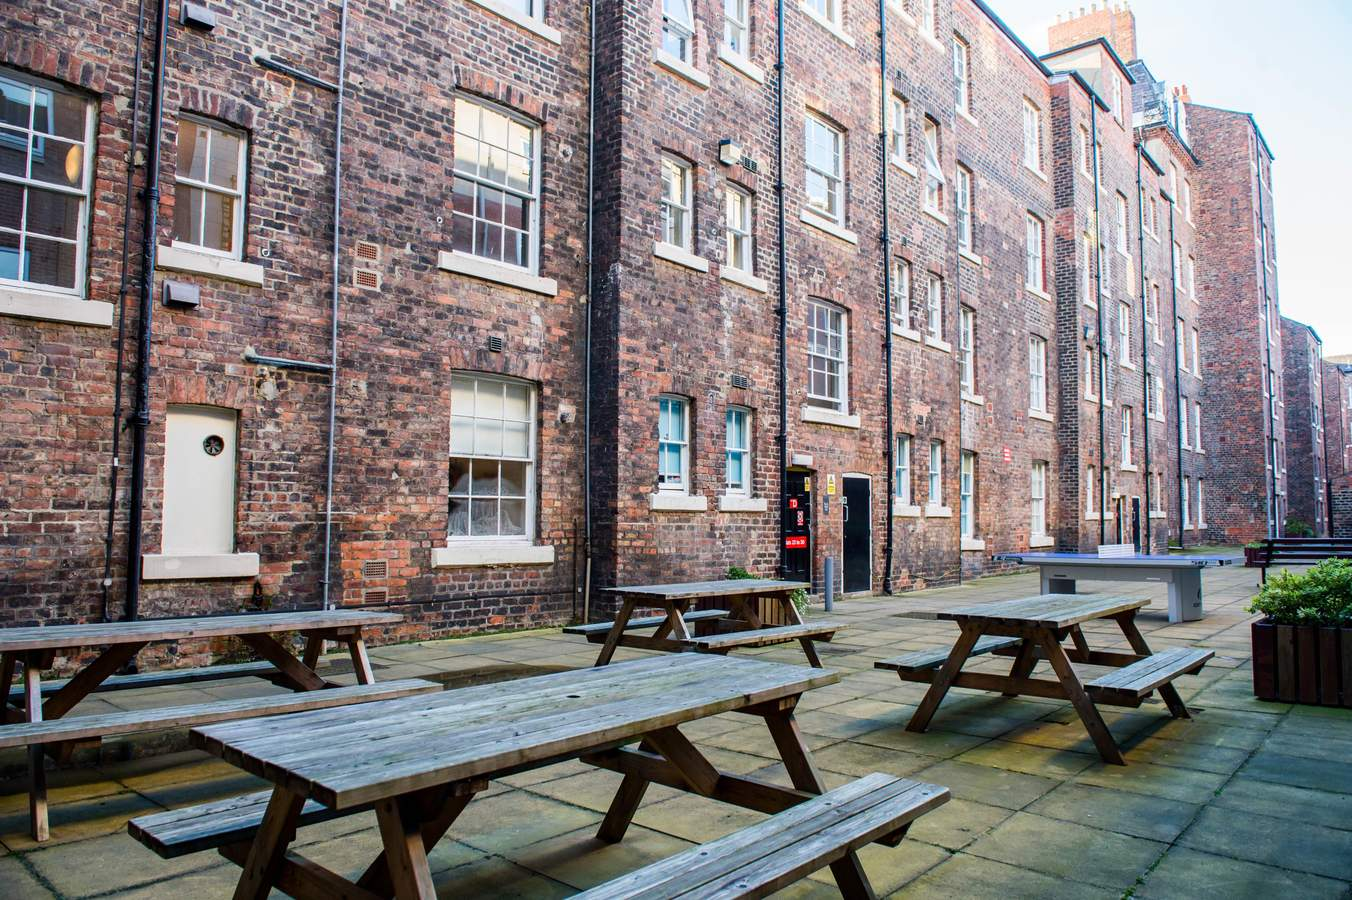 Garth_heads_-_courtyard_03_(low_res)